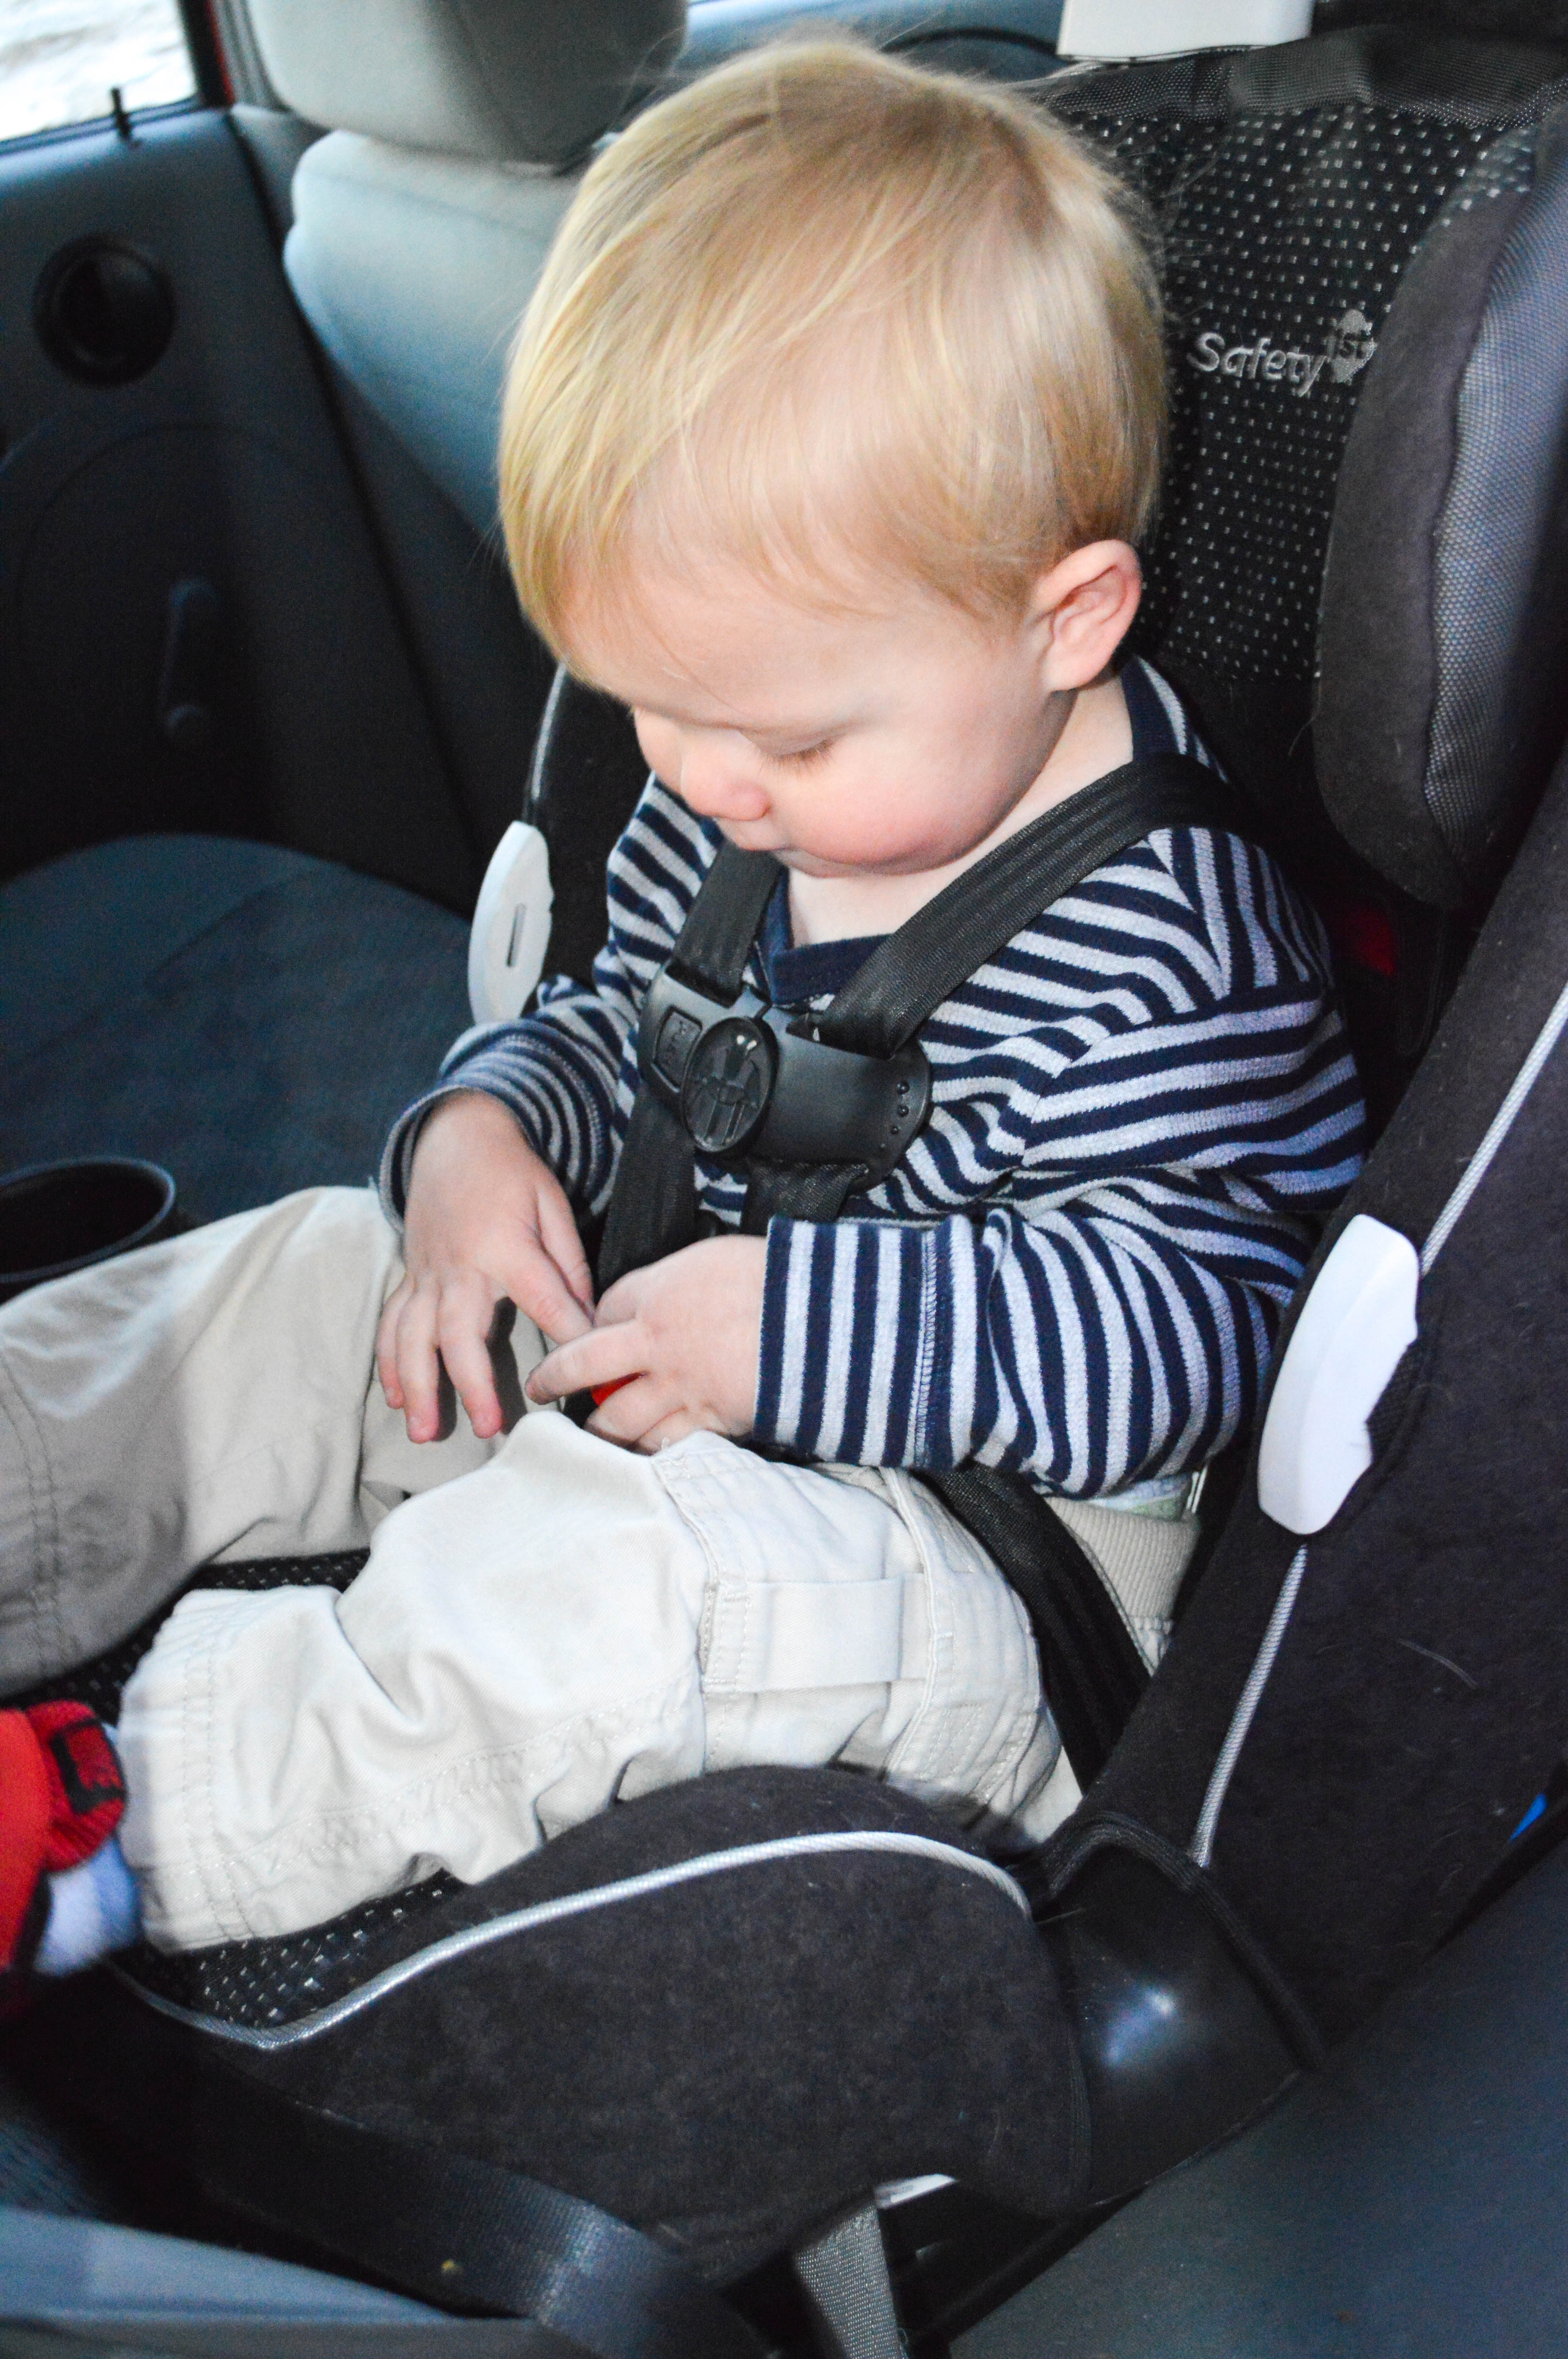 Let\'s Talk About Car Seat Safety (Featuring Graco Car Seats) | All ...